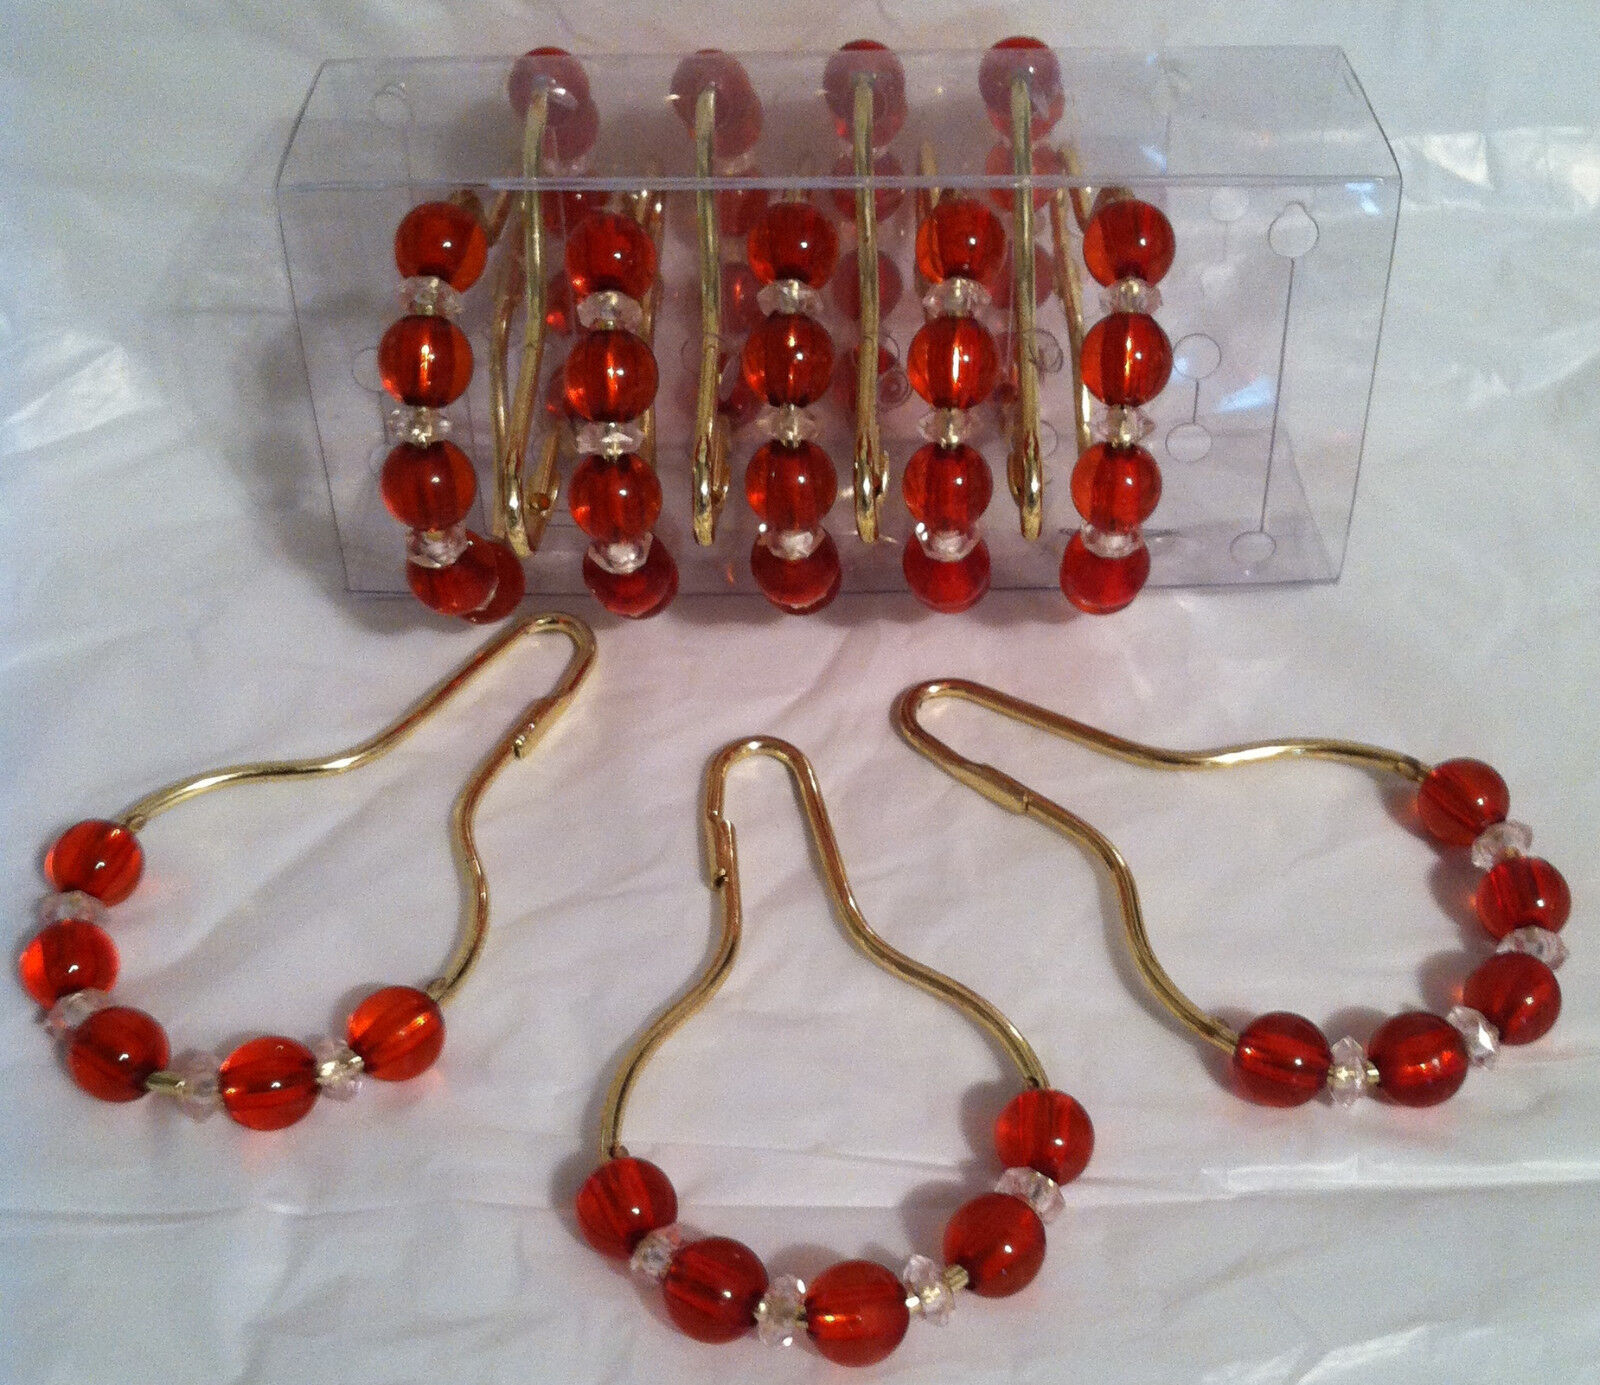 ... Beads Color: Red/Gold Pattern: Crystal Like Beads 12 Curtain Hooks